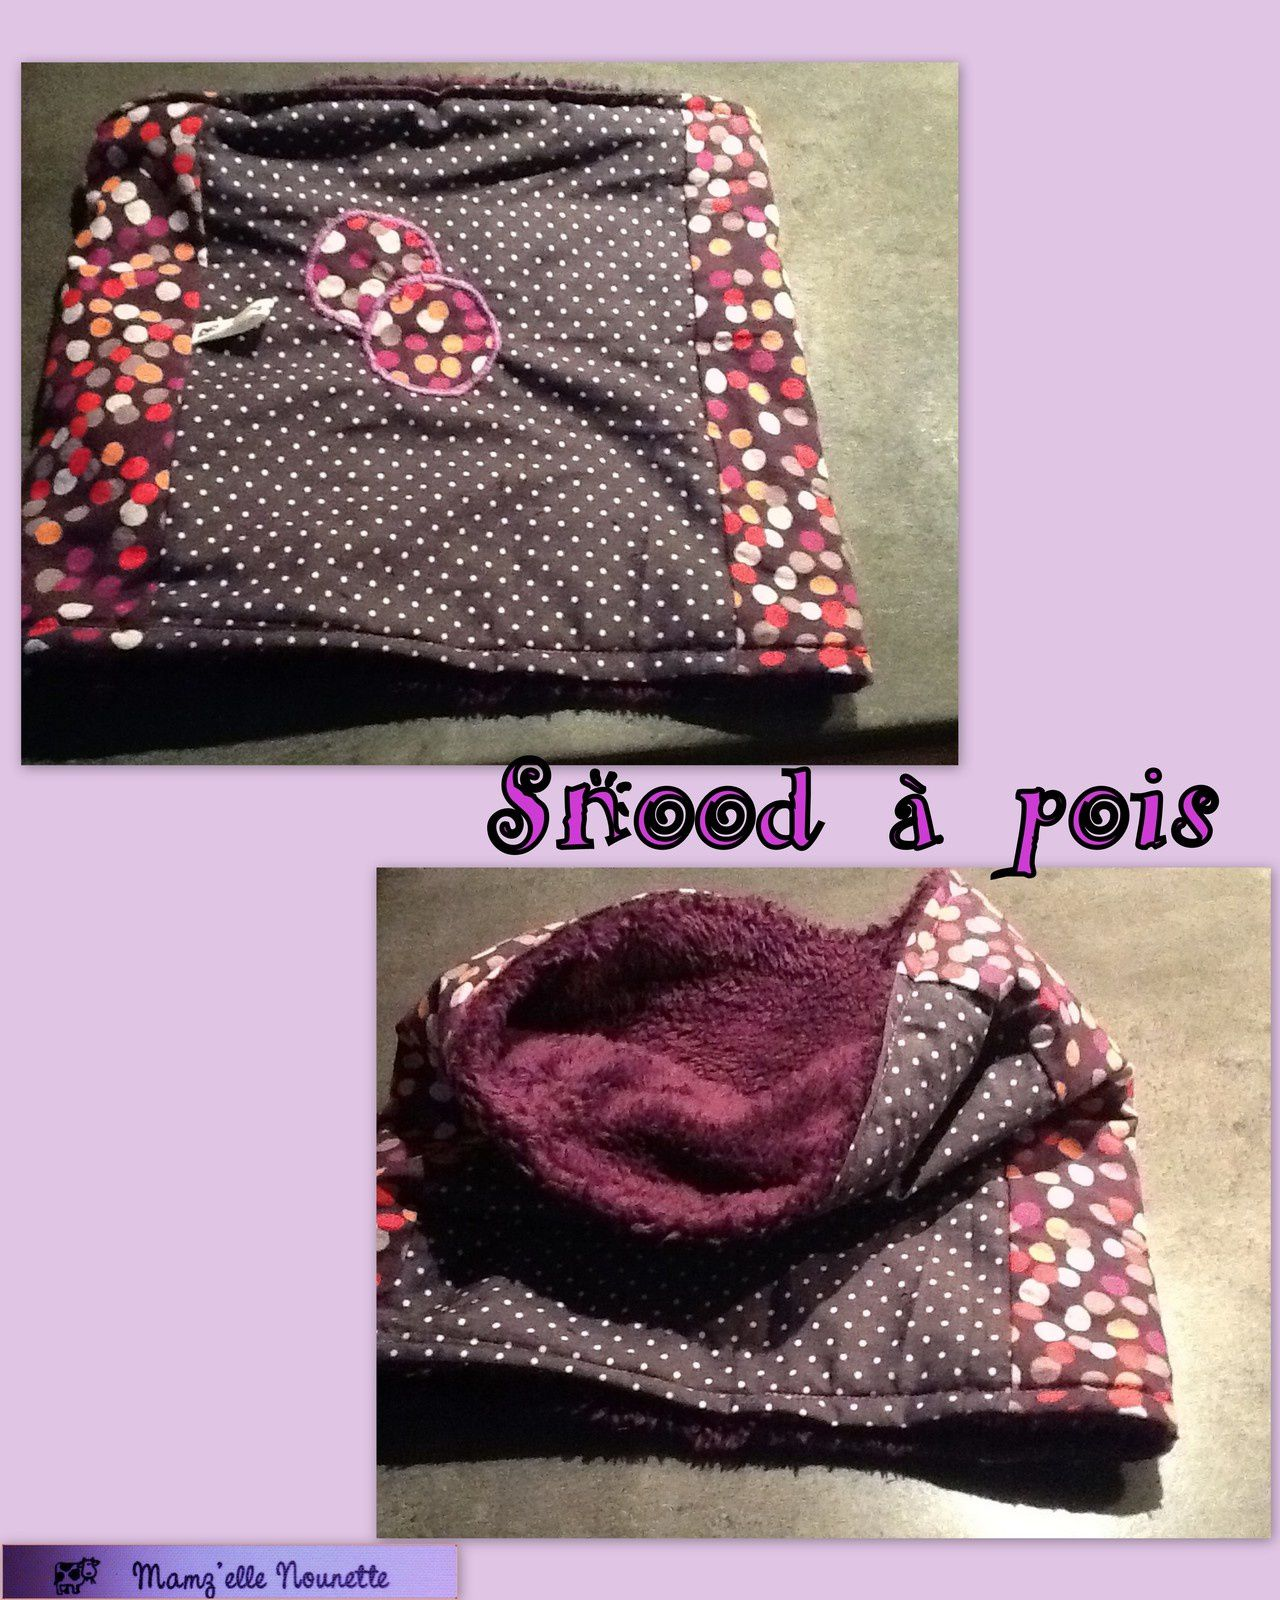 Snood à pois